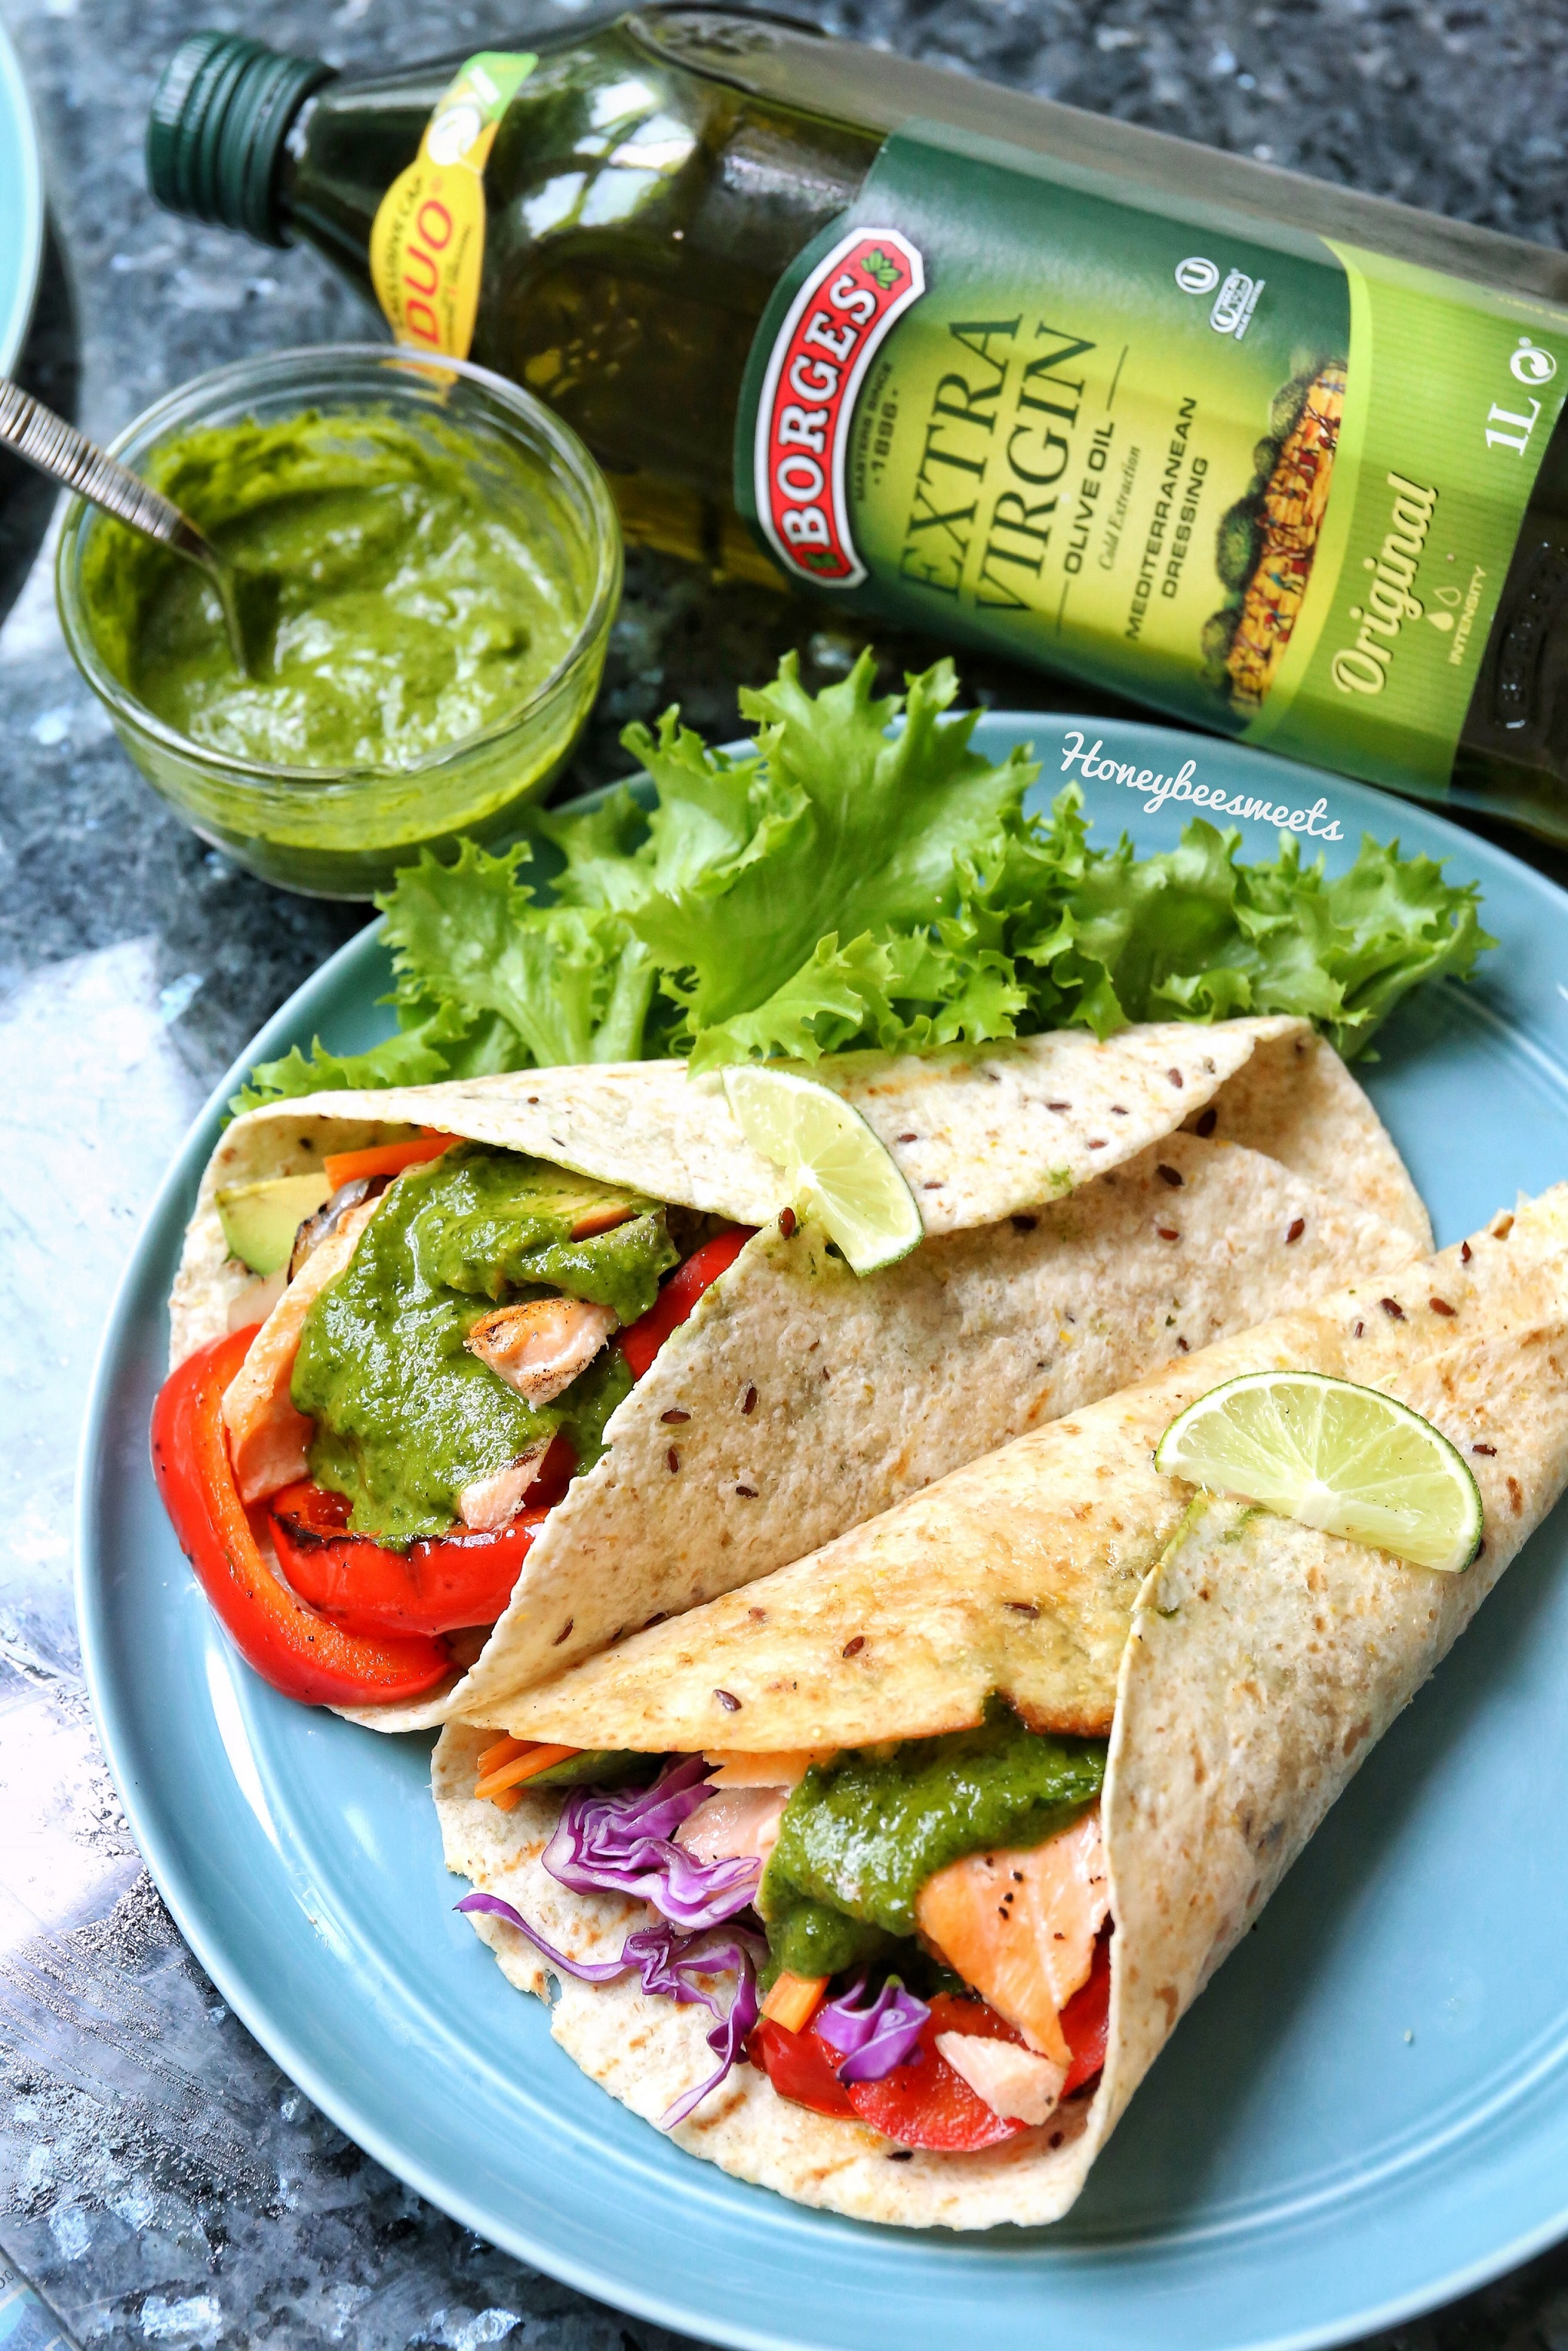 Grilled Salmon & Vegetables Tortilla With Chimichurri Sauce